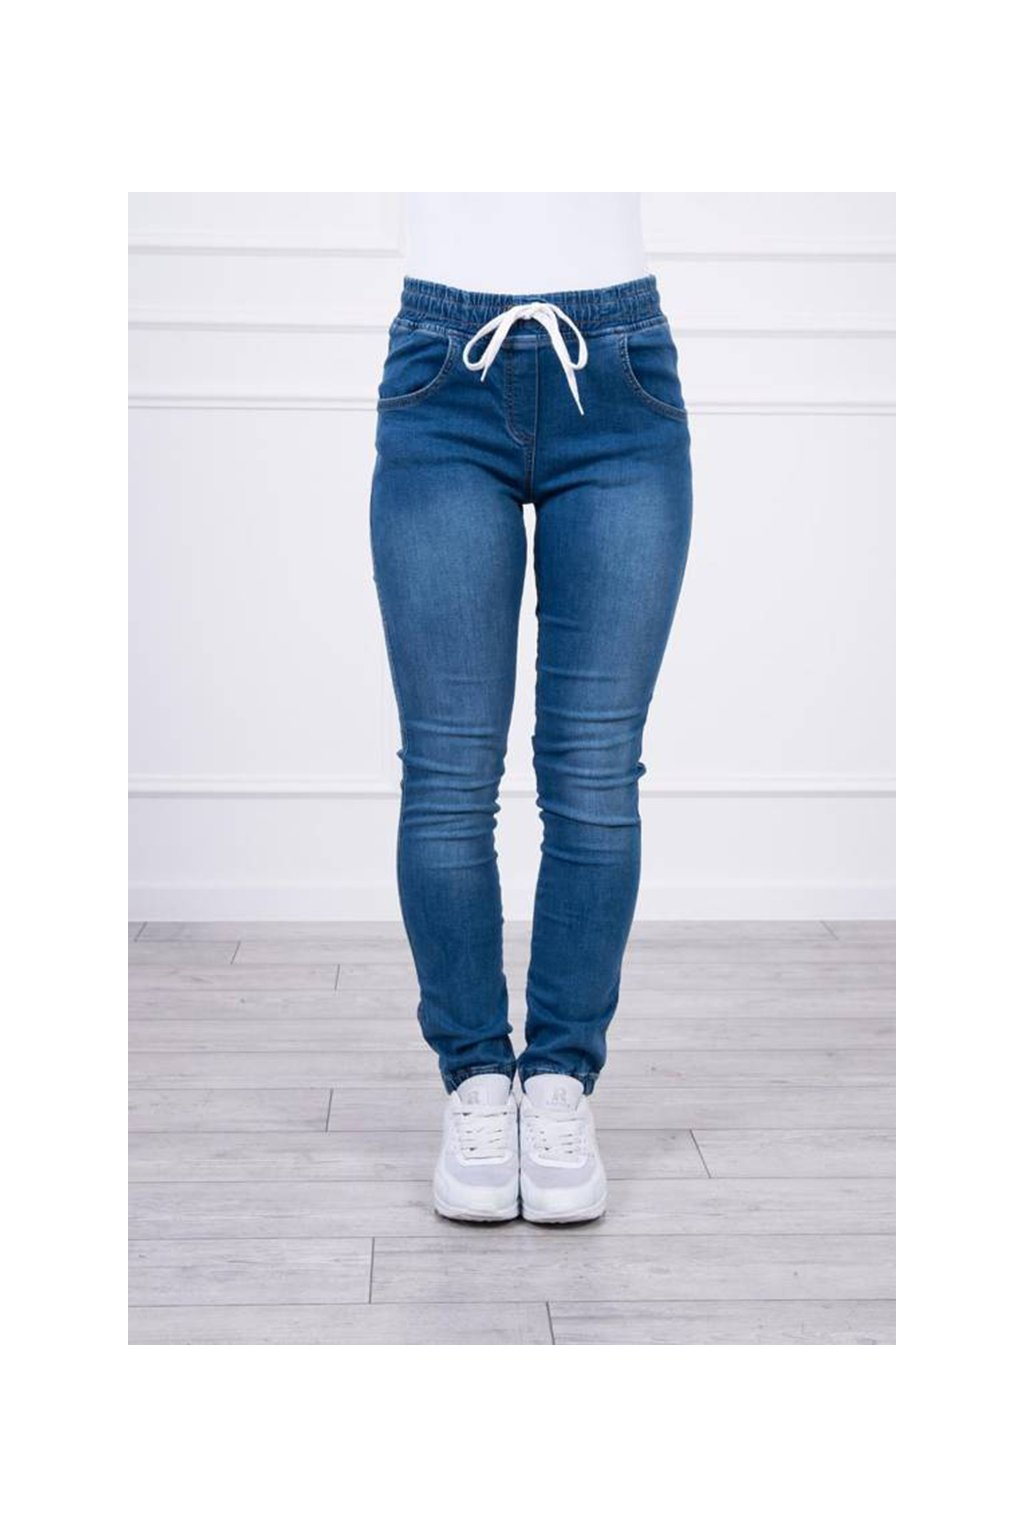 eng pm Denim trousers with a drawstring jeans 19714 4